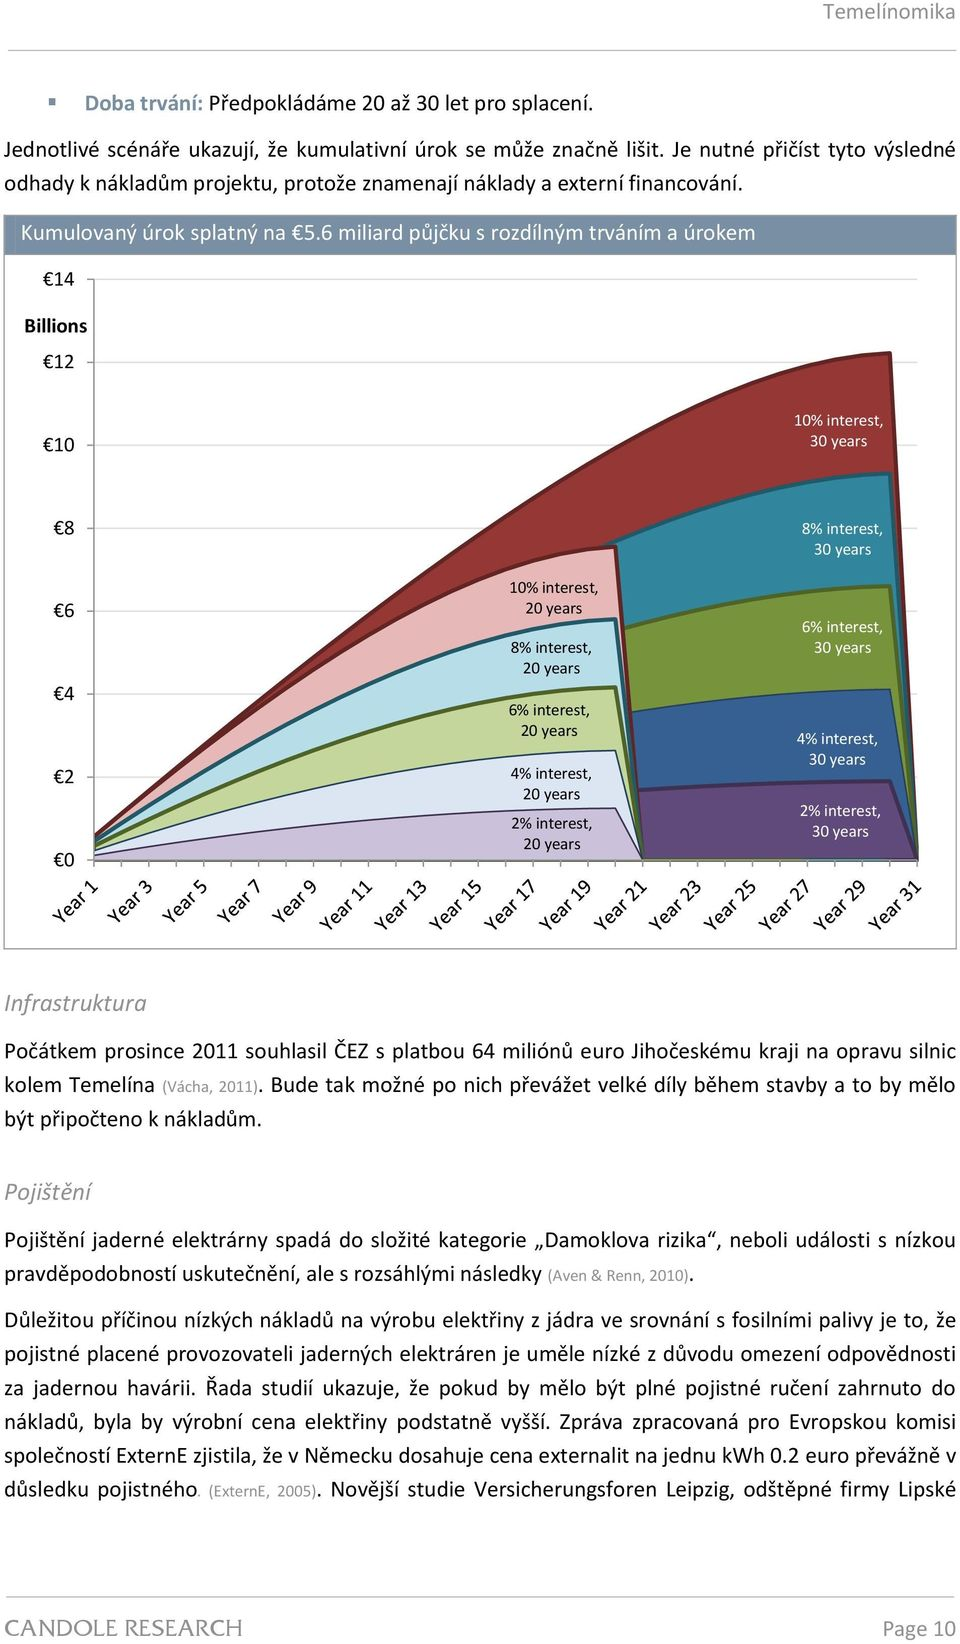 6 miliard půjčku s rozdílným trváním a úrokem 14 Billions 12 10 10% interest, 30 years 8 6 4 2 0 10% interest, 20 years 8% interest, 20 years 6% interest, 20 years 4% interest, 20 years 2% interest,